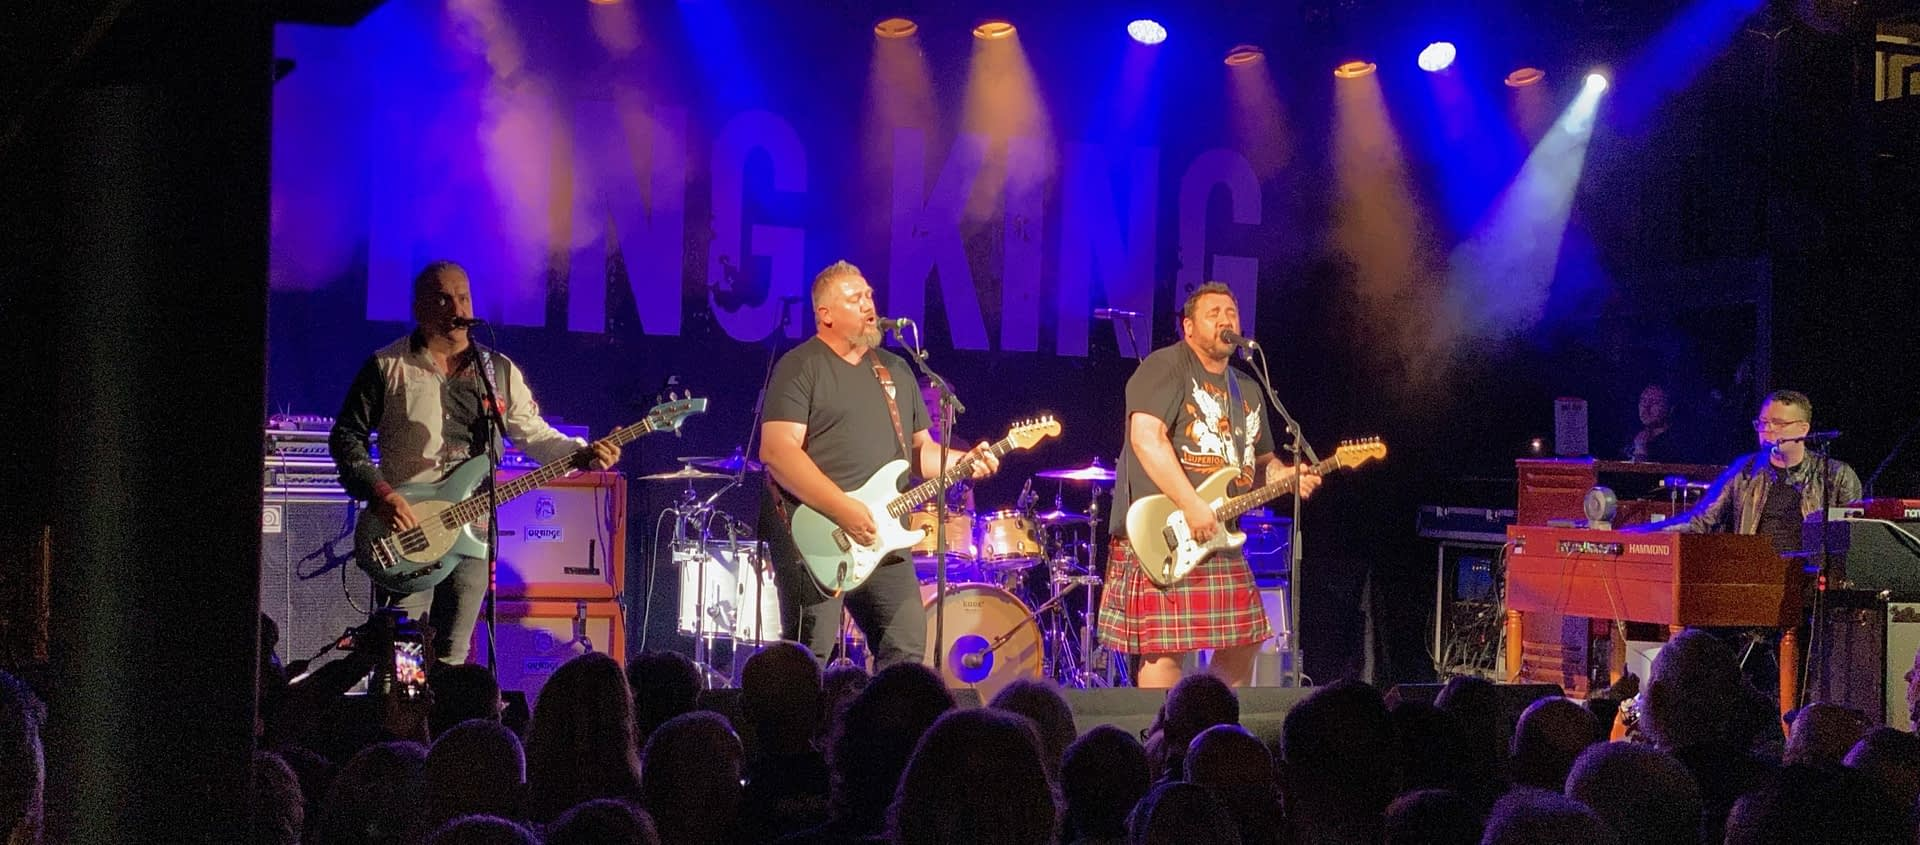 King King at Holmfirth Picturedrome Aug 7th 2021